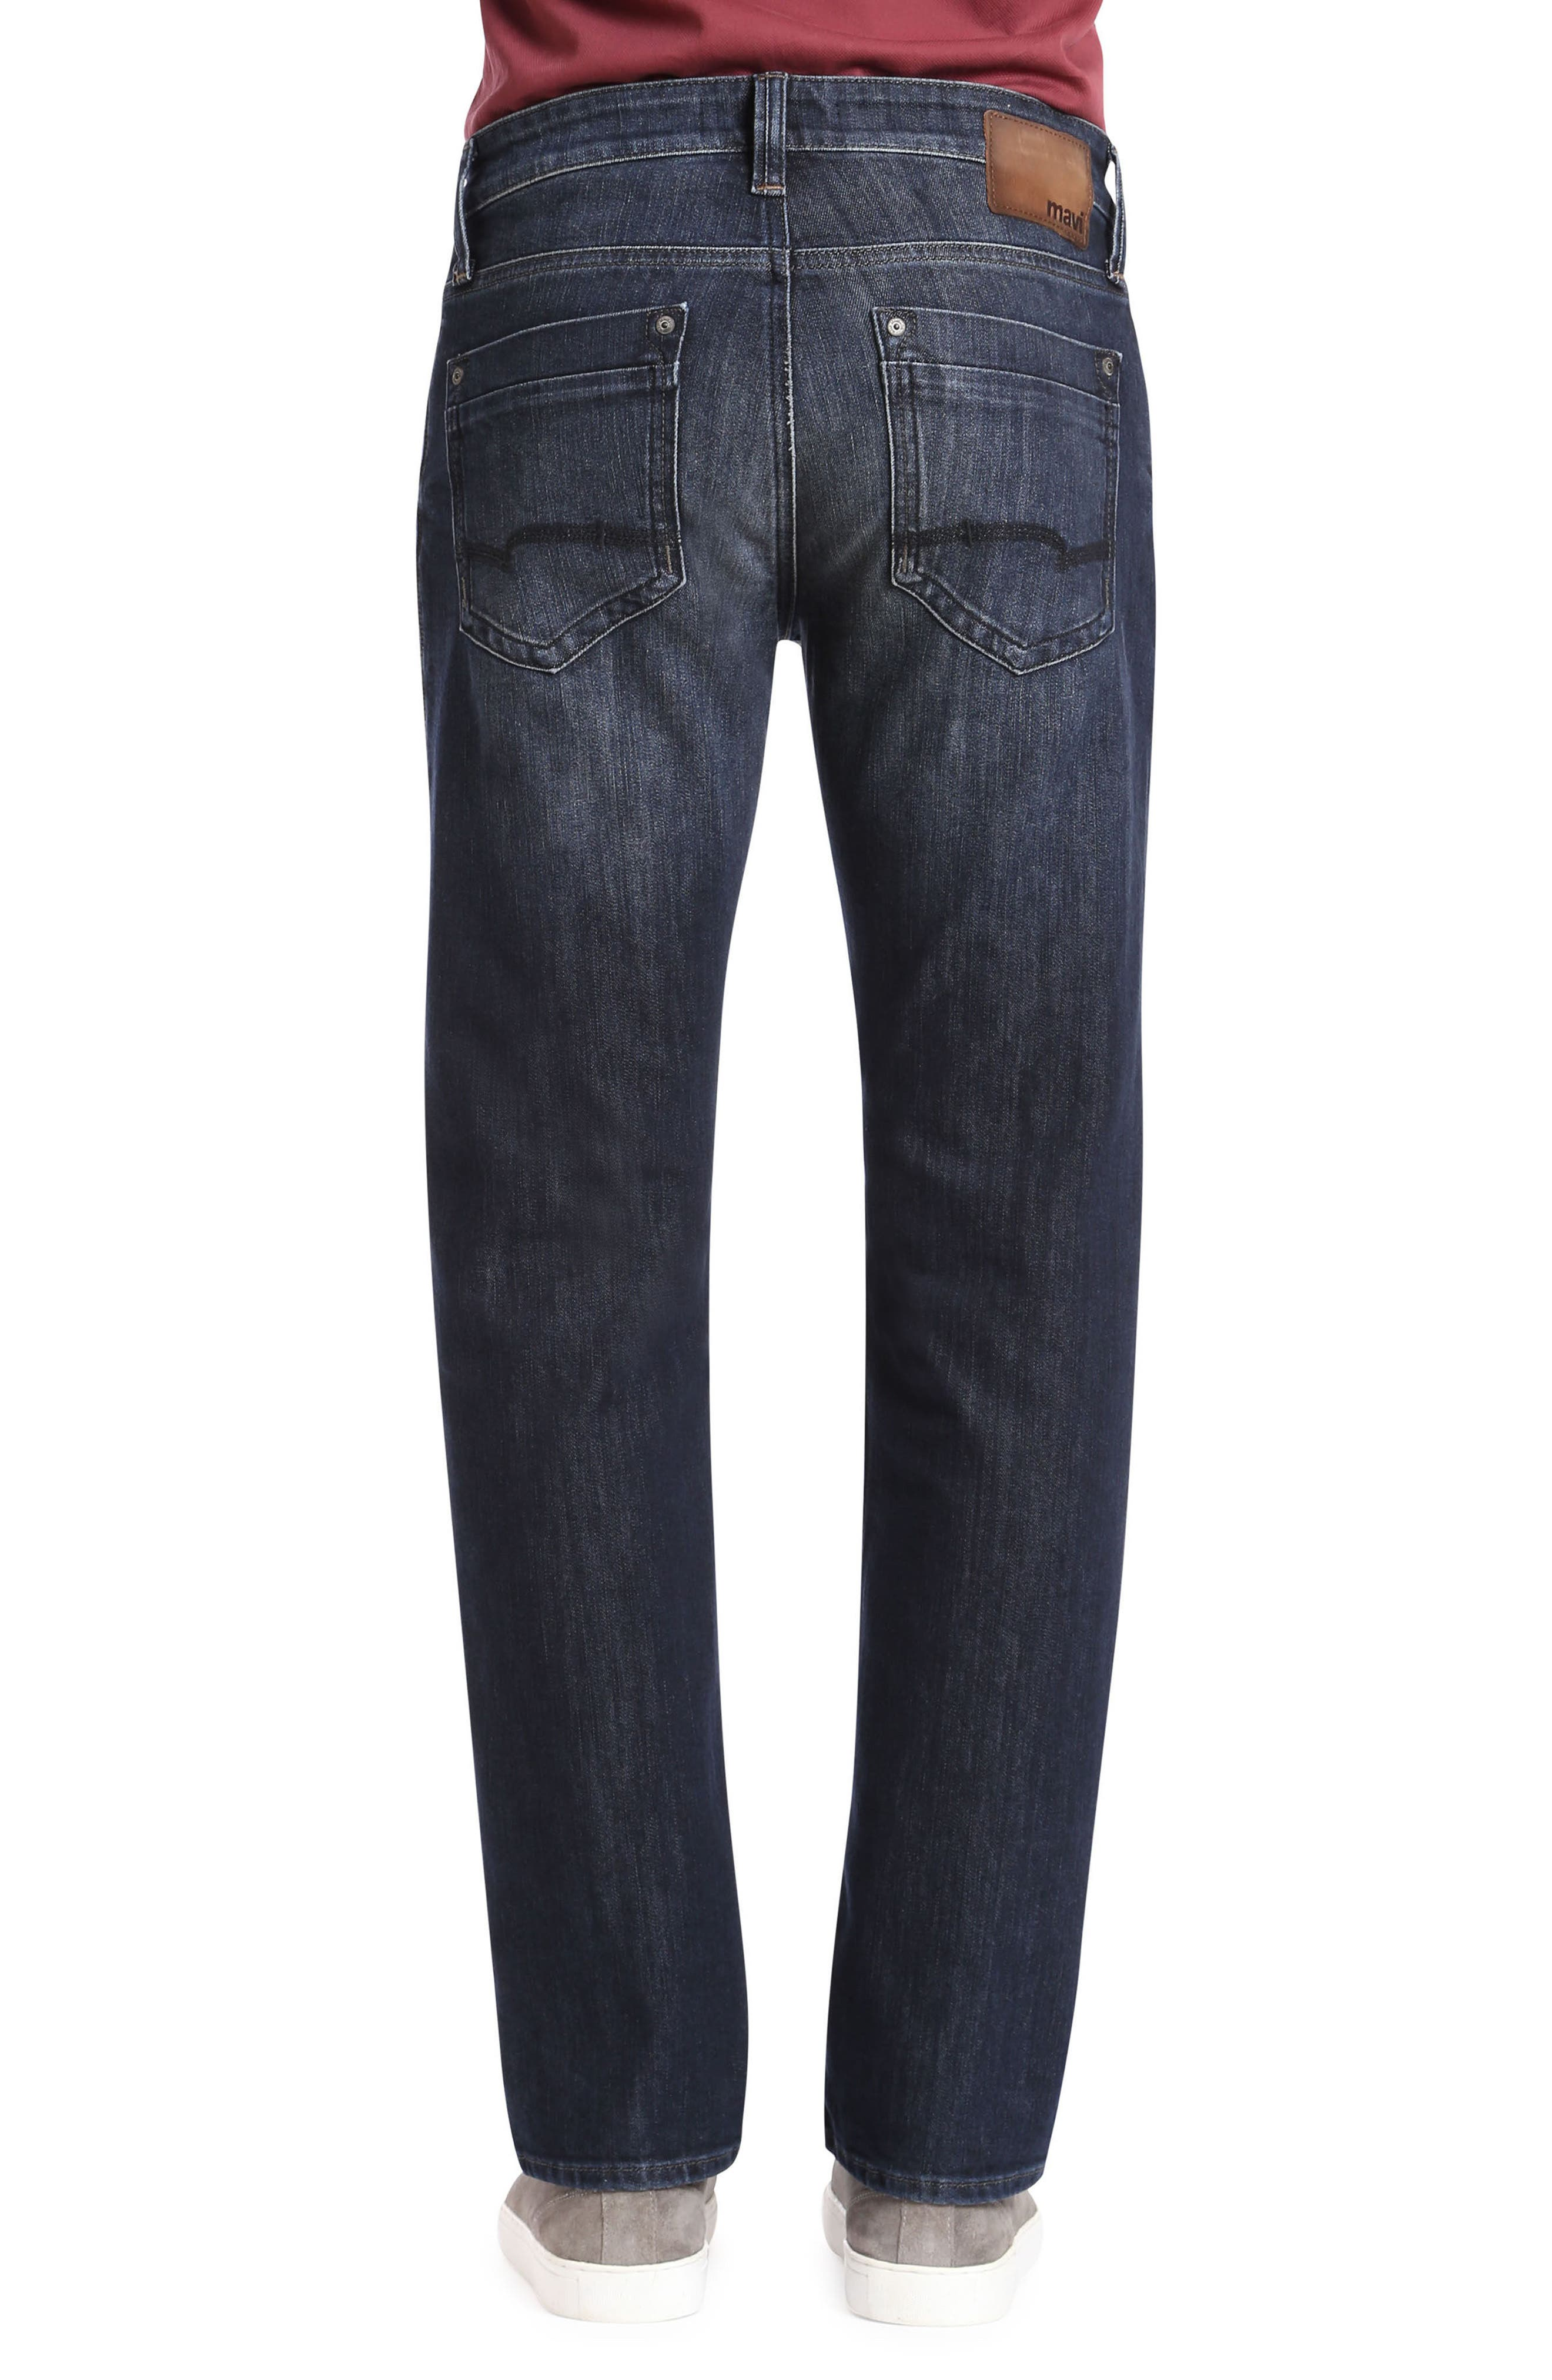 Zach Straight Leg Jeans,                             Alternate thumbnail 2, color,                             DEEP SHADED NEW YORK